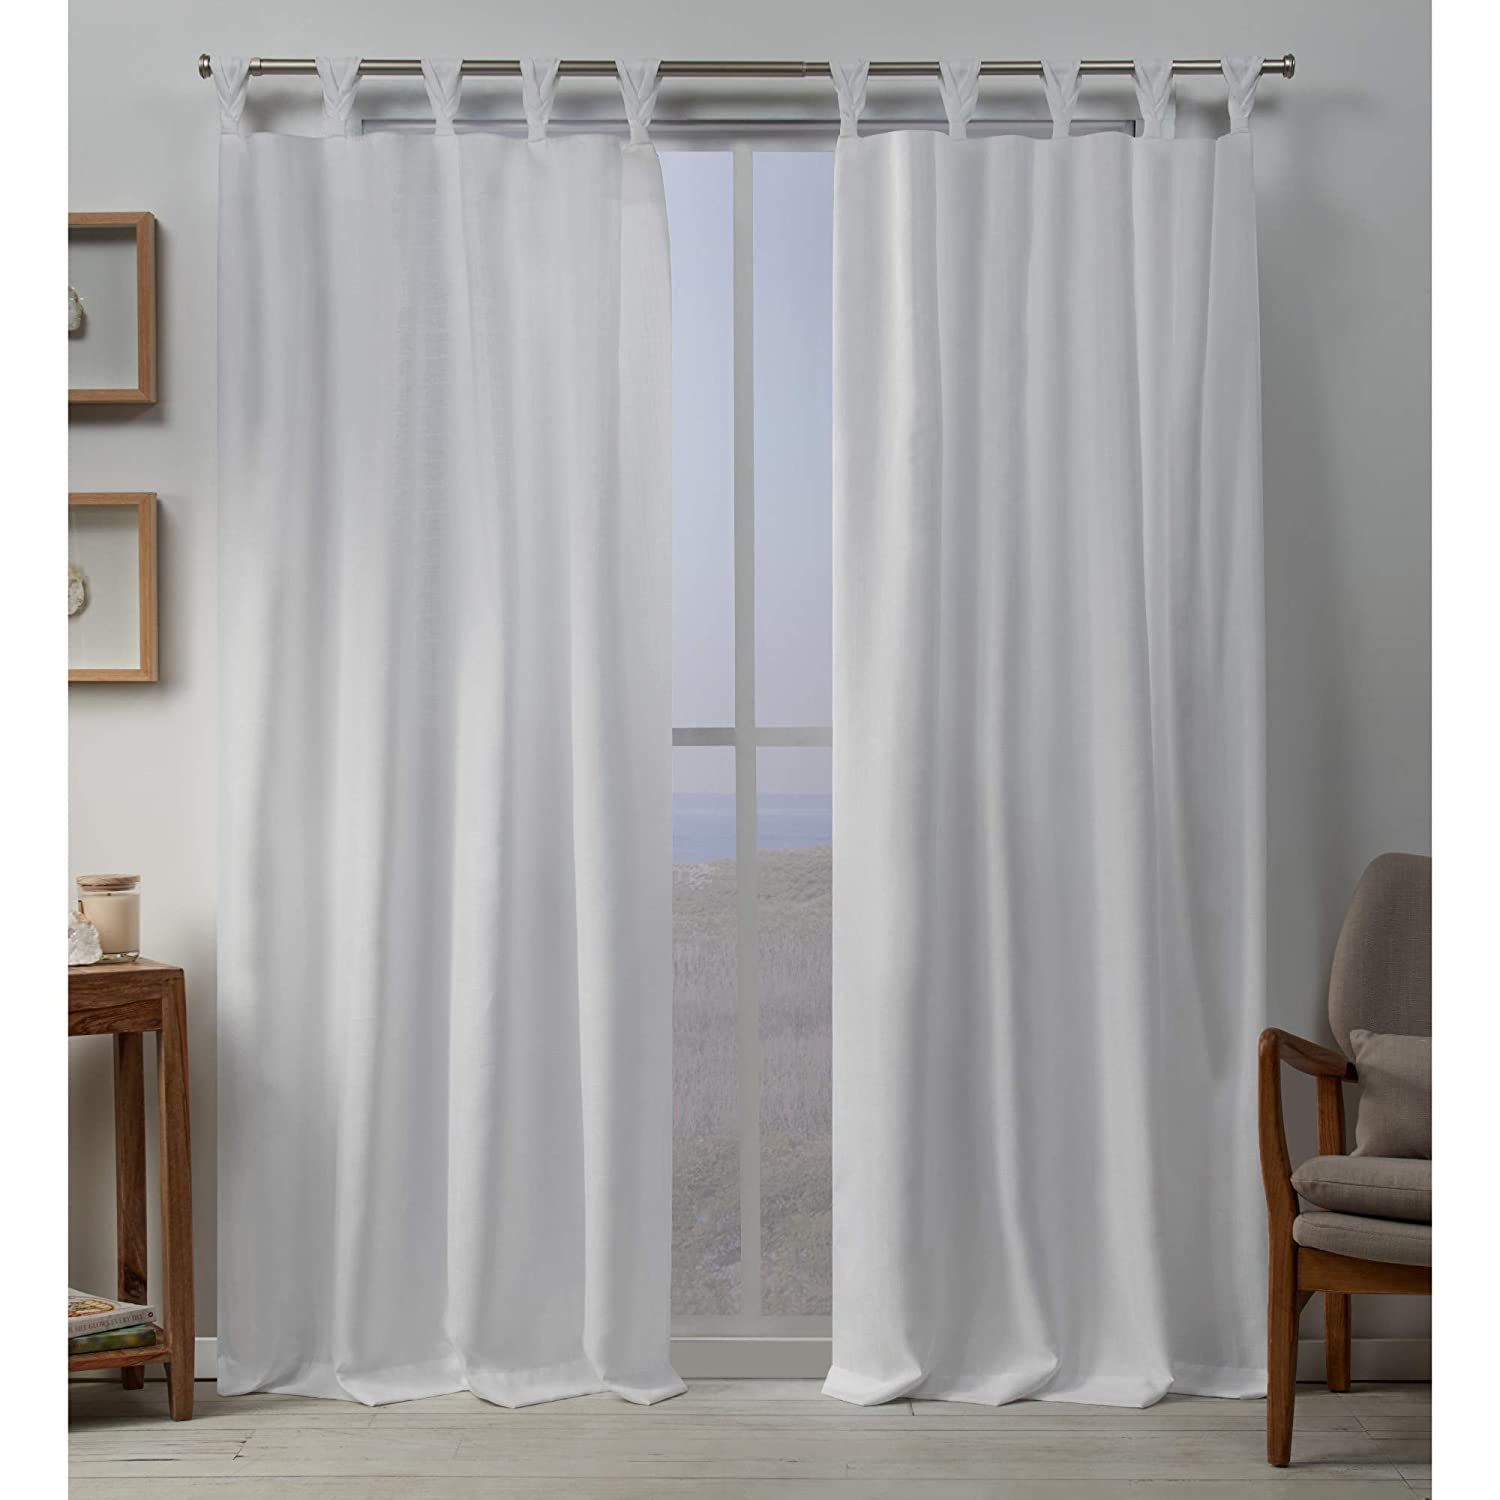 Exclusive Home Curtains Loha BT Panel Pair, 54x84, Winter White